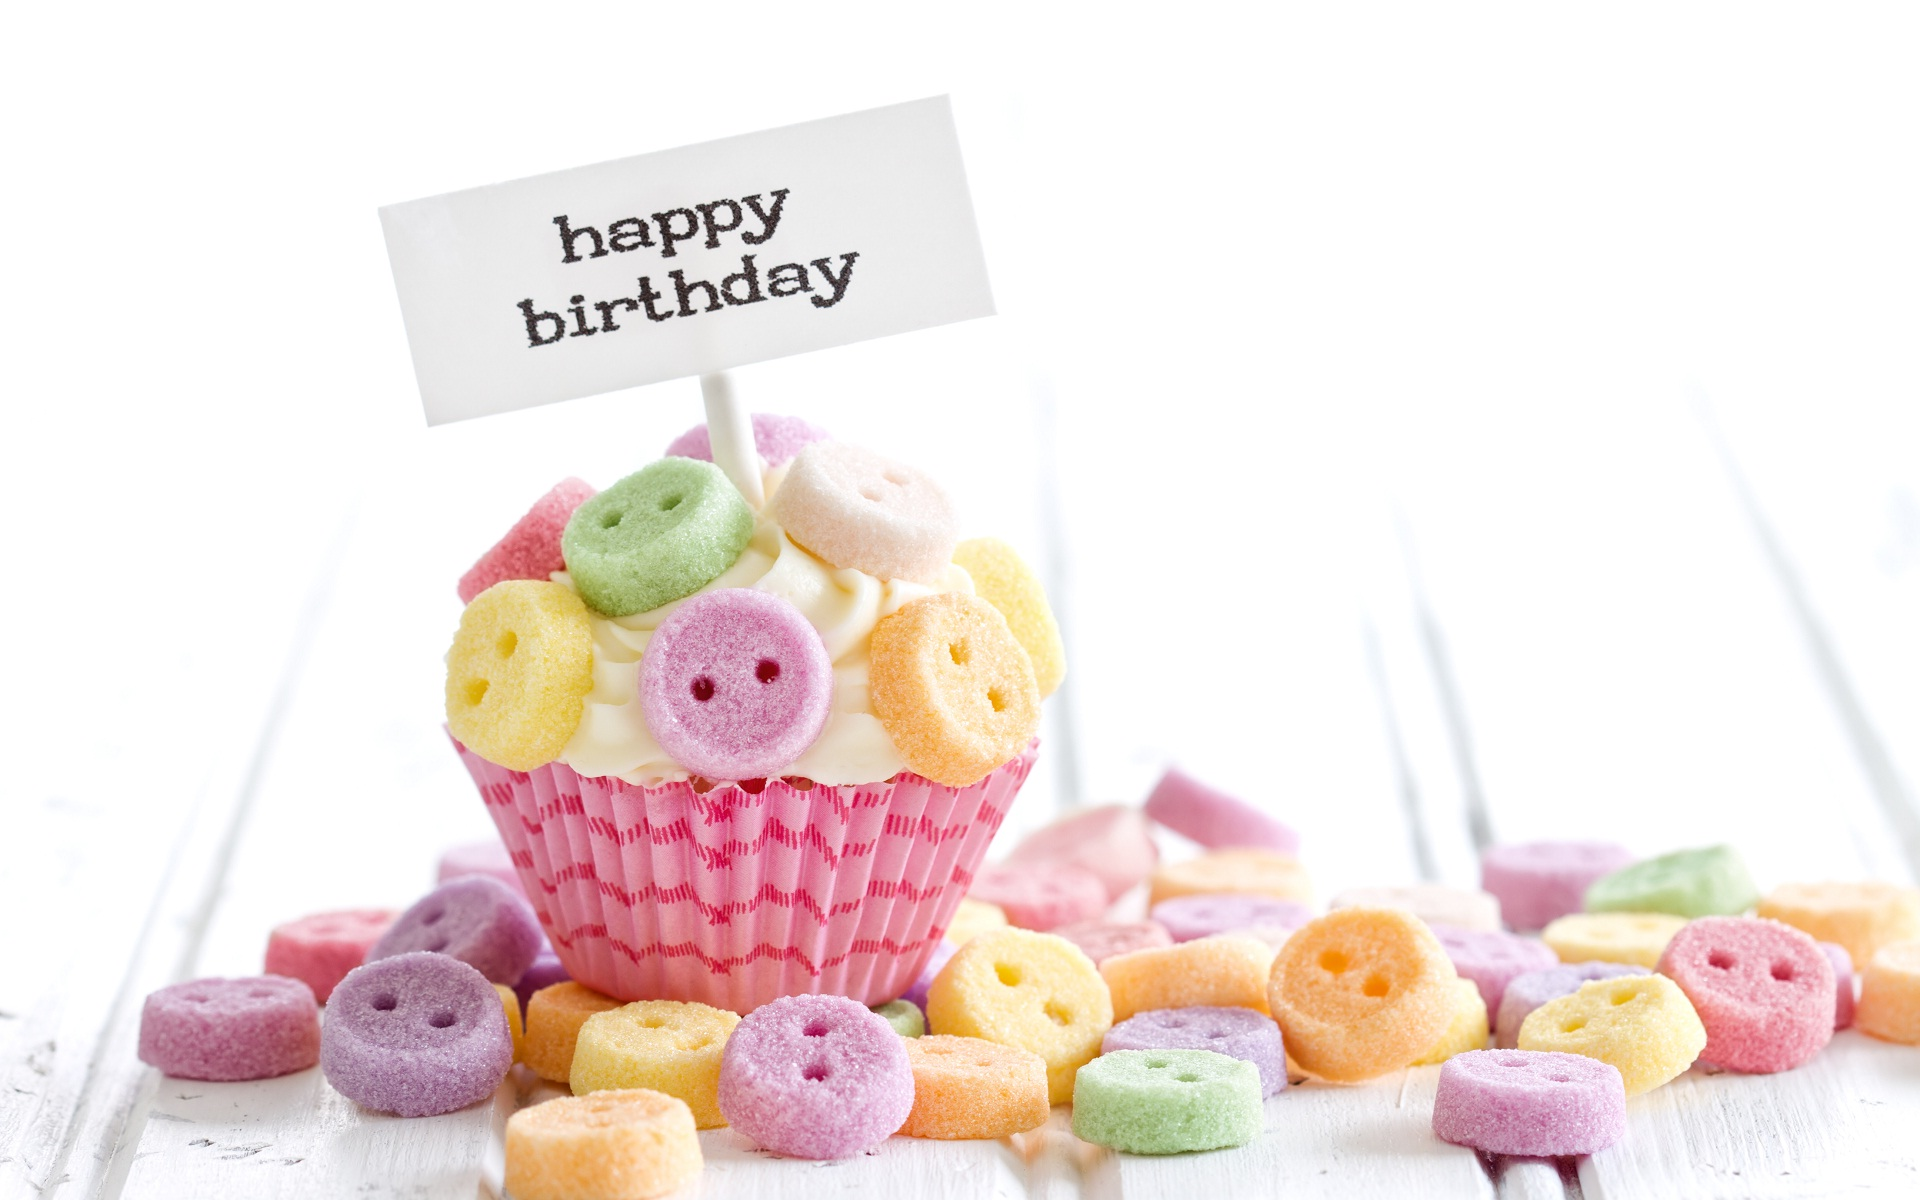 birthday ke wallpaper ; Happy-birthday-cake-and-candies-wallpaper